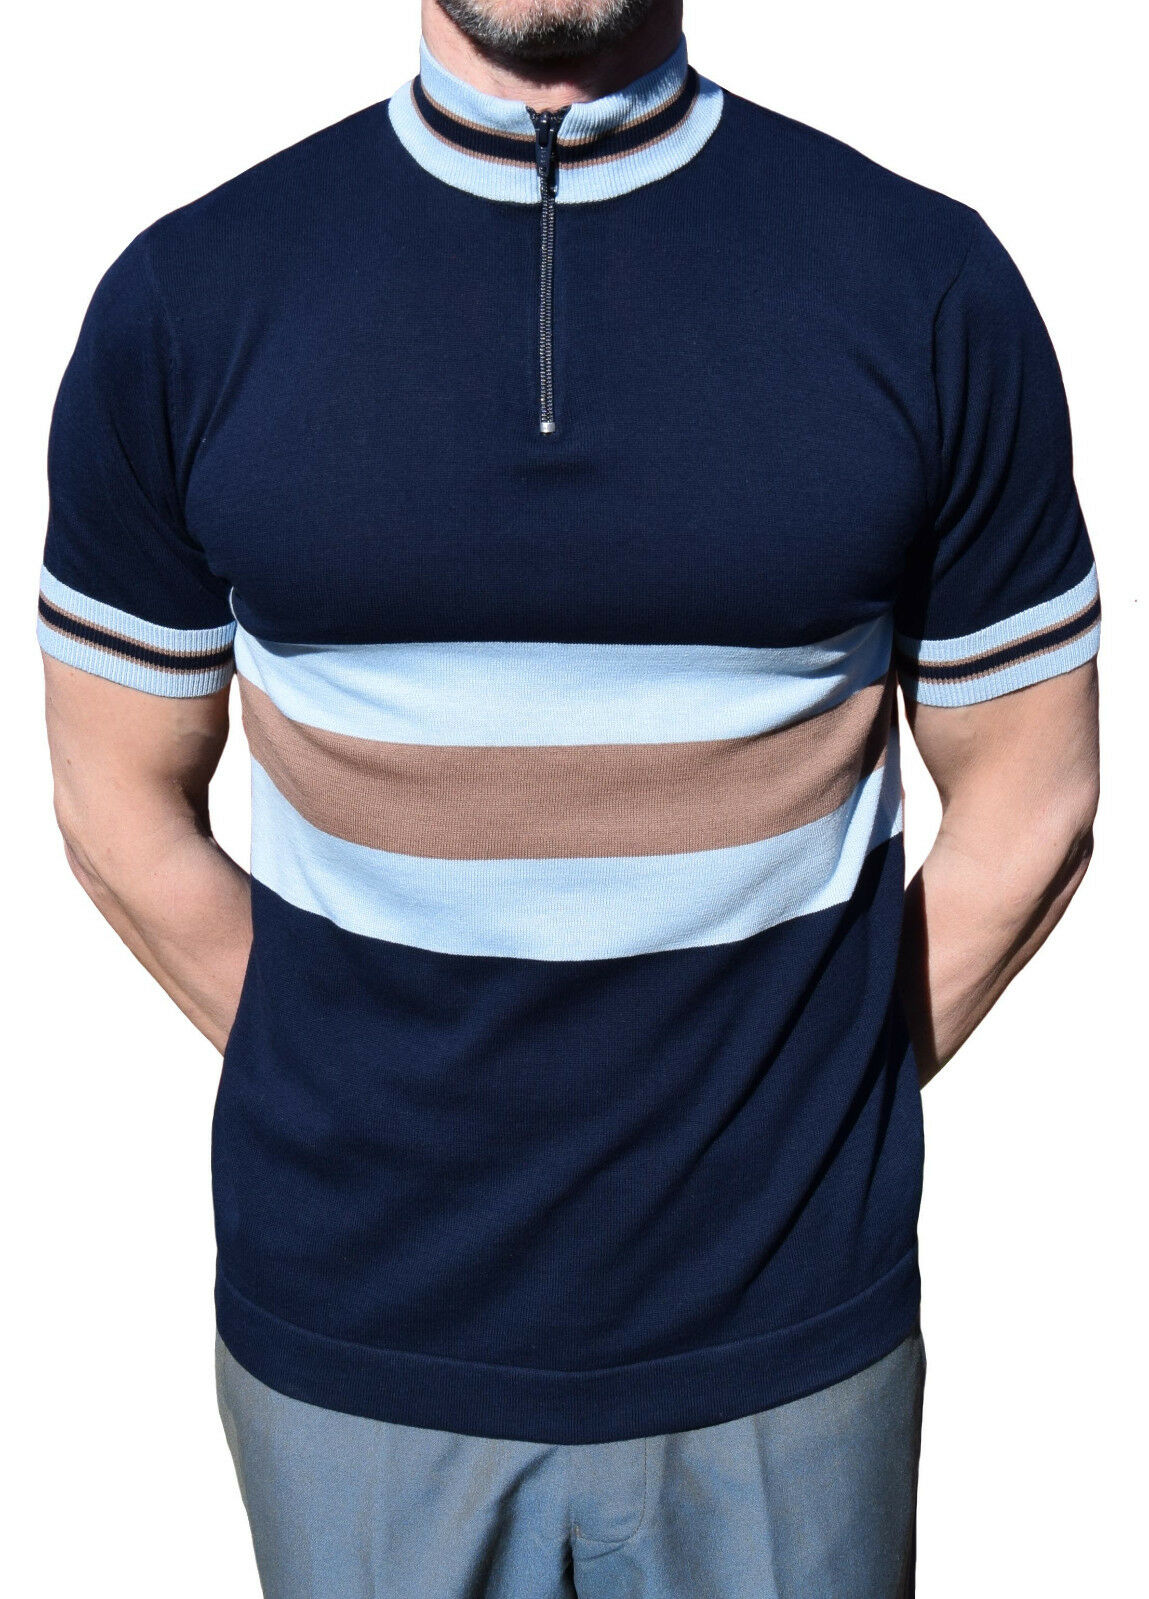 ART GALLERY CLOTHING NAVY Blau CYCLE TOP MOD CLOTHING 60'S RETRO NORTHERN SOUL